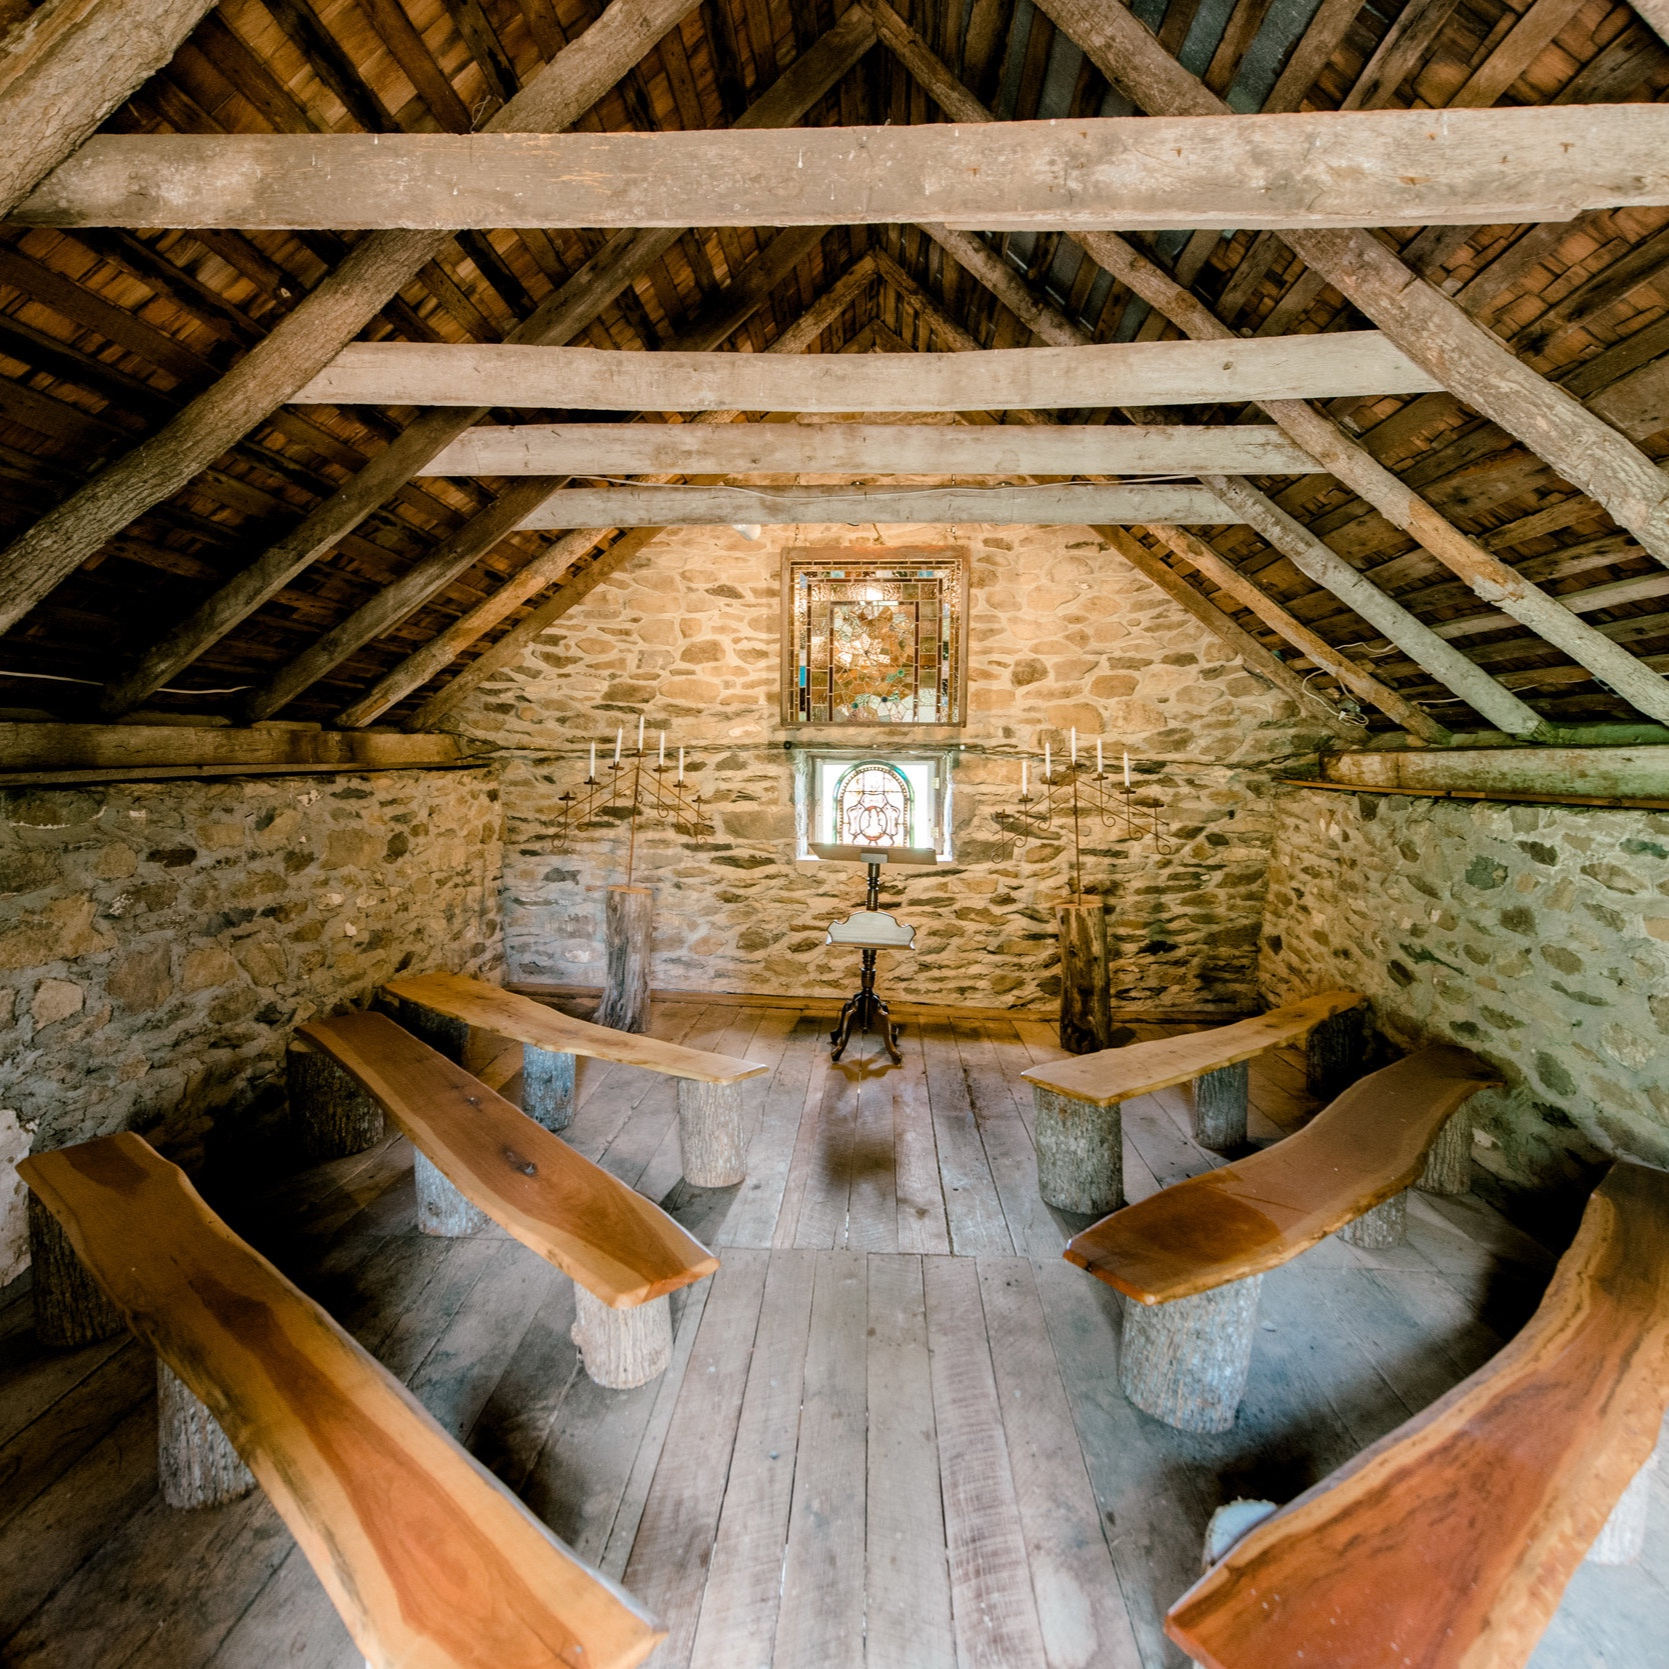 The Chapel - This small historic chapel on the property is perfect for more intimate ceremonies rain or shine. You will fall in love with the stained glass details, antique candelabras, and the hand hewn benches that serve as pews. This one of a kind chapel is sure to wow your guest and create a truly memorable ceremony experience. This is a wonderful option for those interested in a pop up wedding, or simply for photos!Photo courtesy of Photography Du Jour